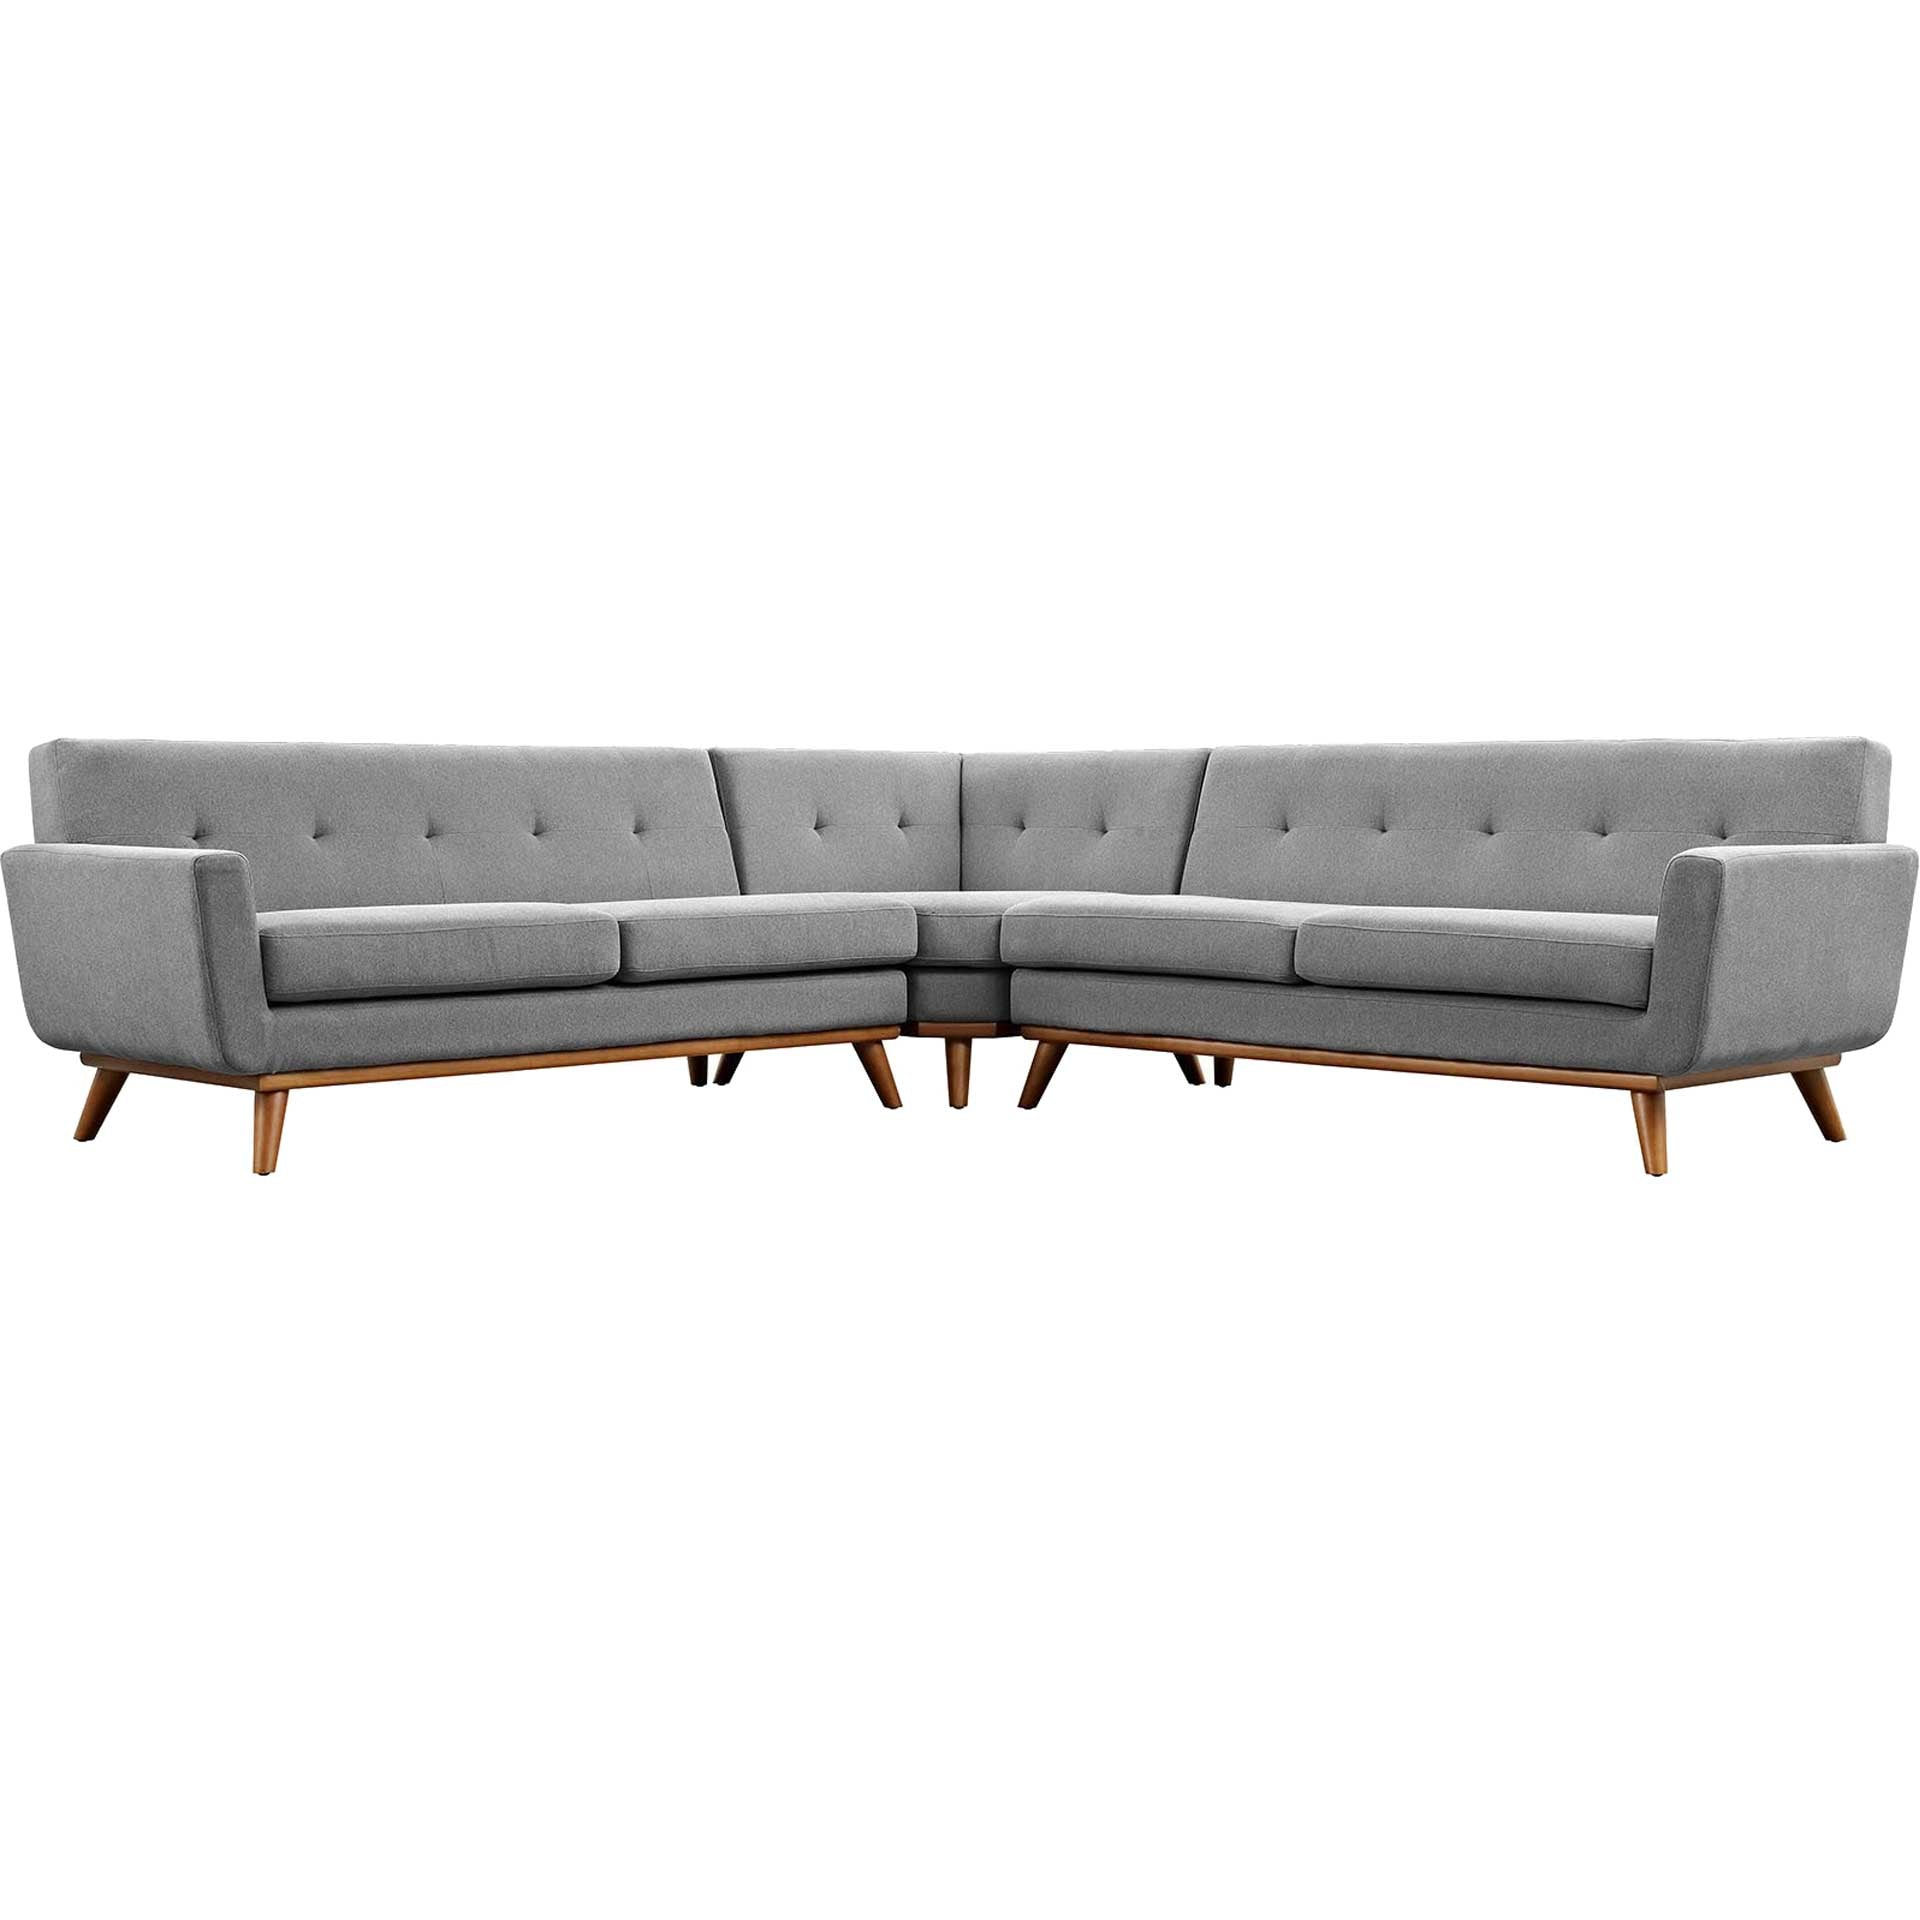 Emory L-Shaped Sectional Sofa Expectation Gray